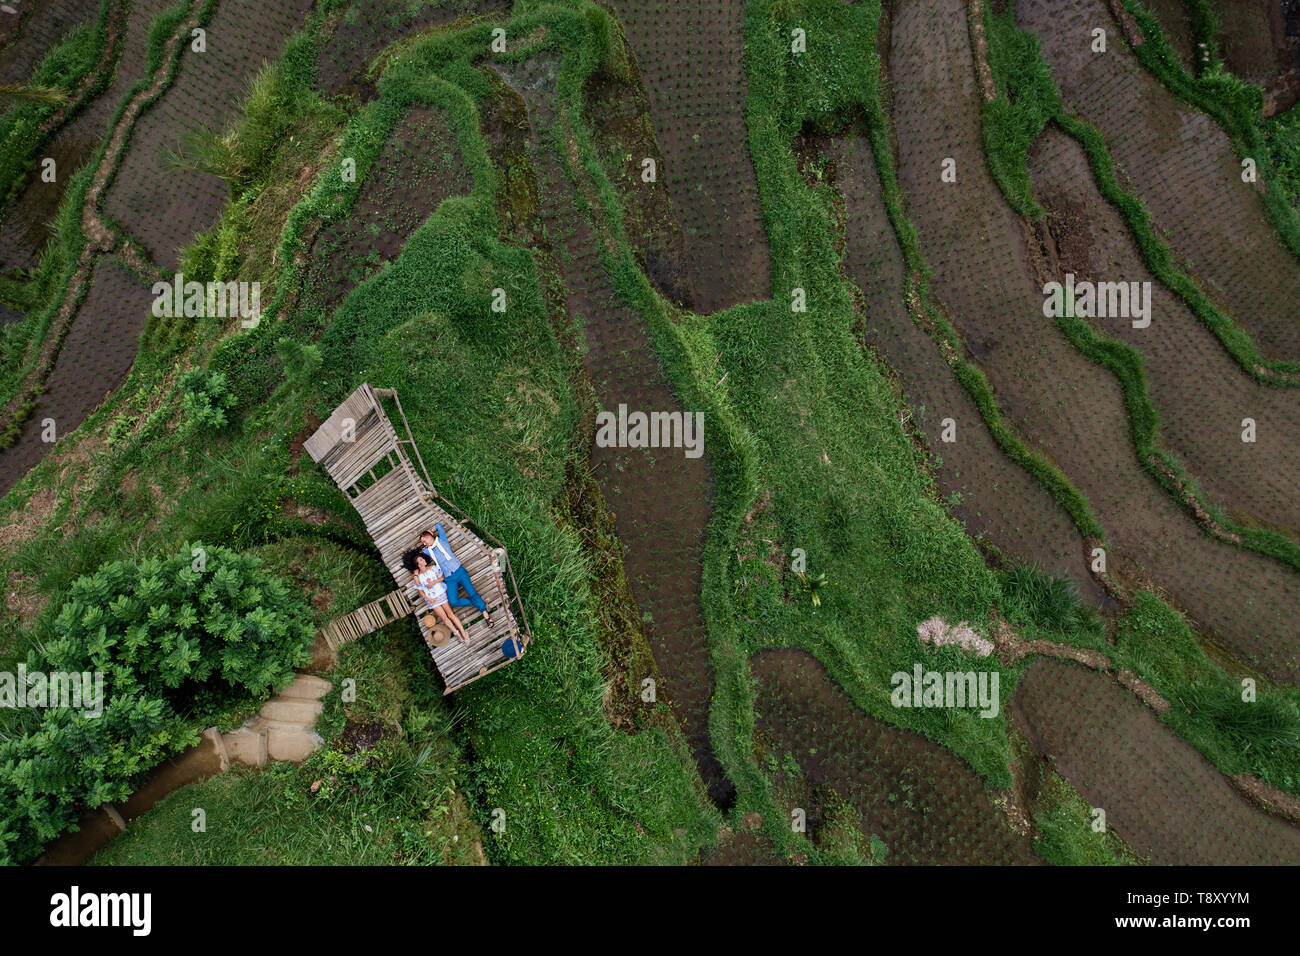 Aerial view on top. Two lovers of young people lie on a wooden bridge. Happy couple traveling at Bali, rice terraces of Tegalalang, Ubud. Honeymoon - Stock Image